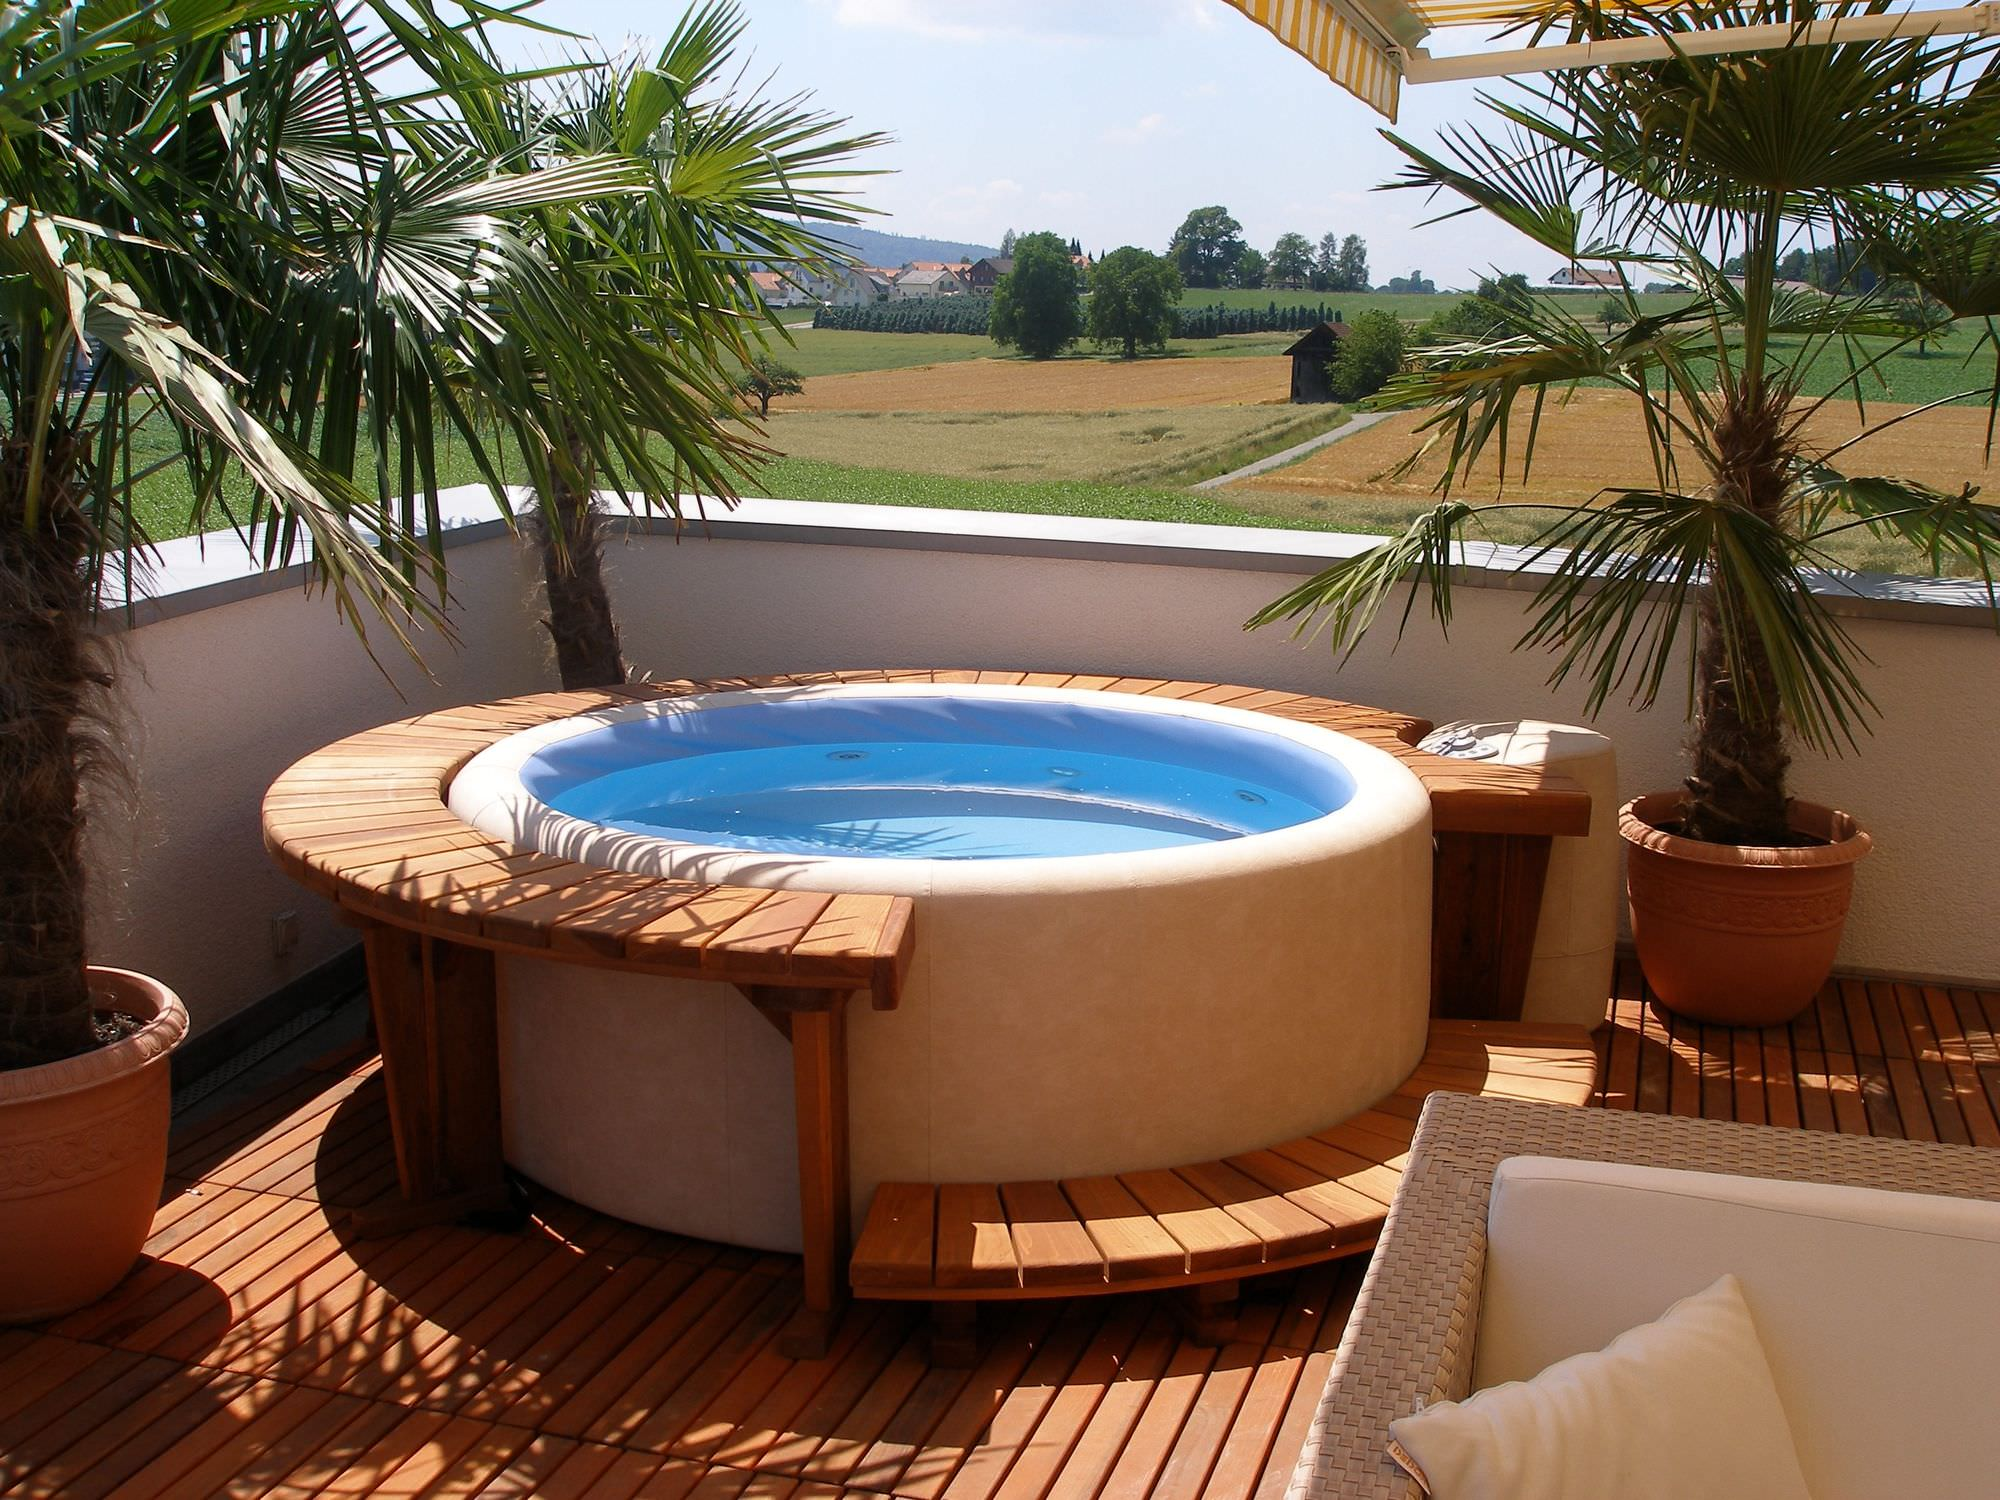 ... above-ground hot tub / circular / with integrated LED lighting & Above-ground hot tub / circular / with integrated LED lighting ...